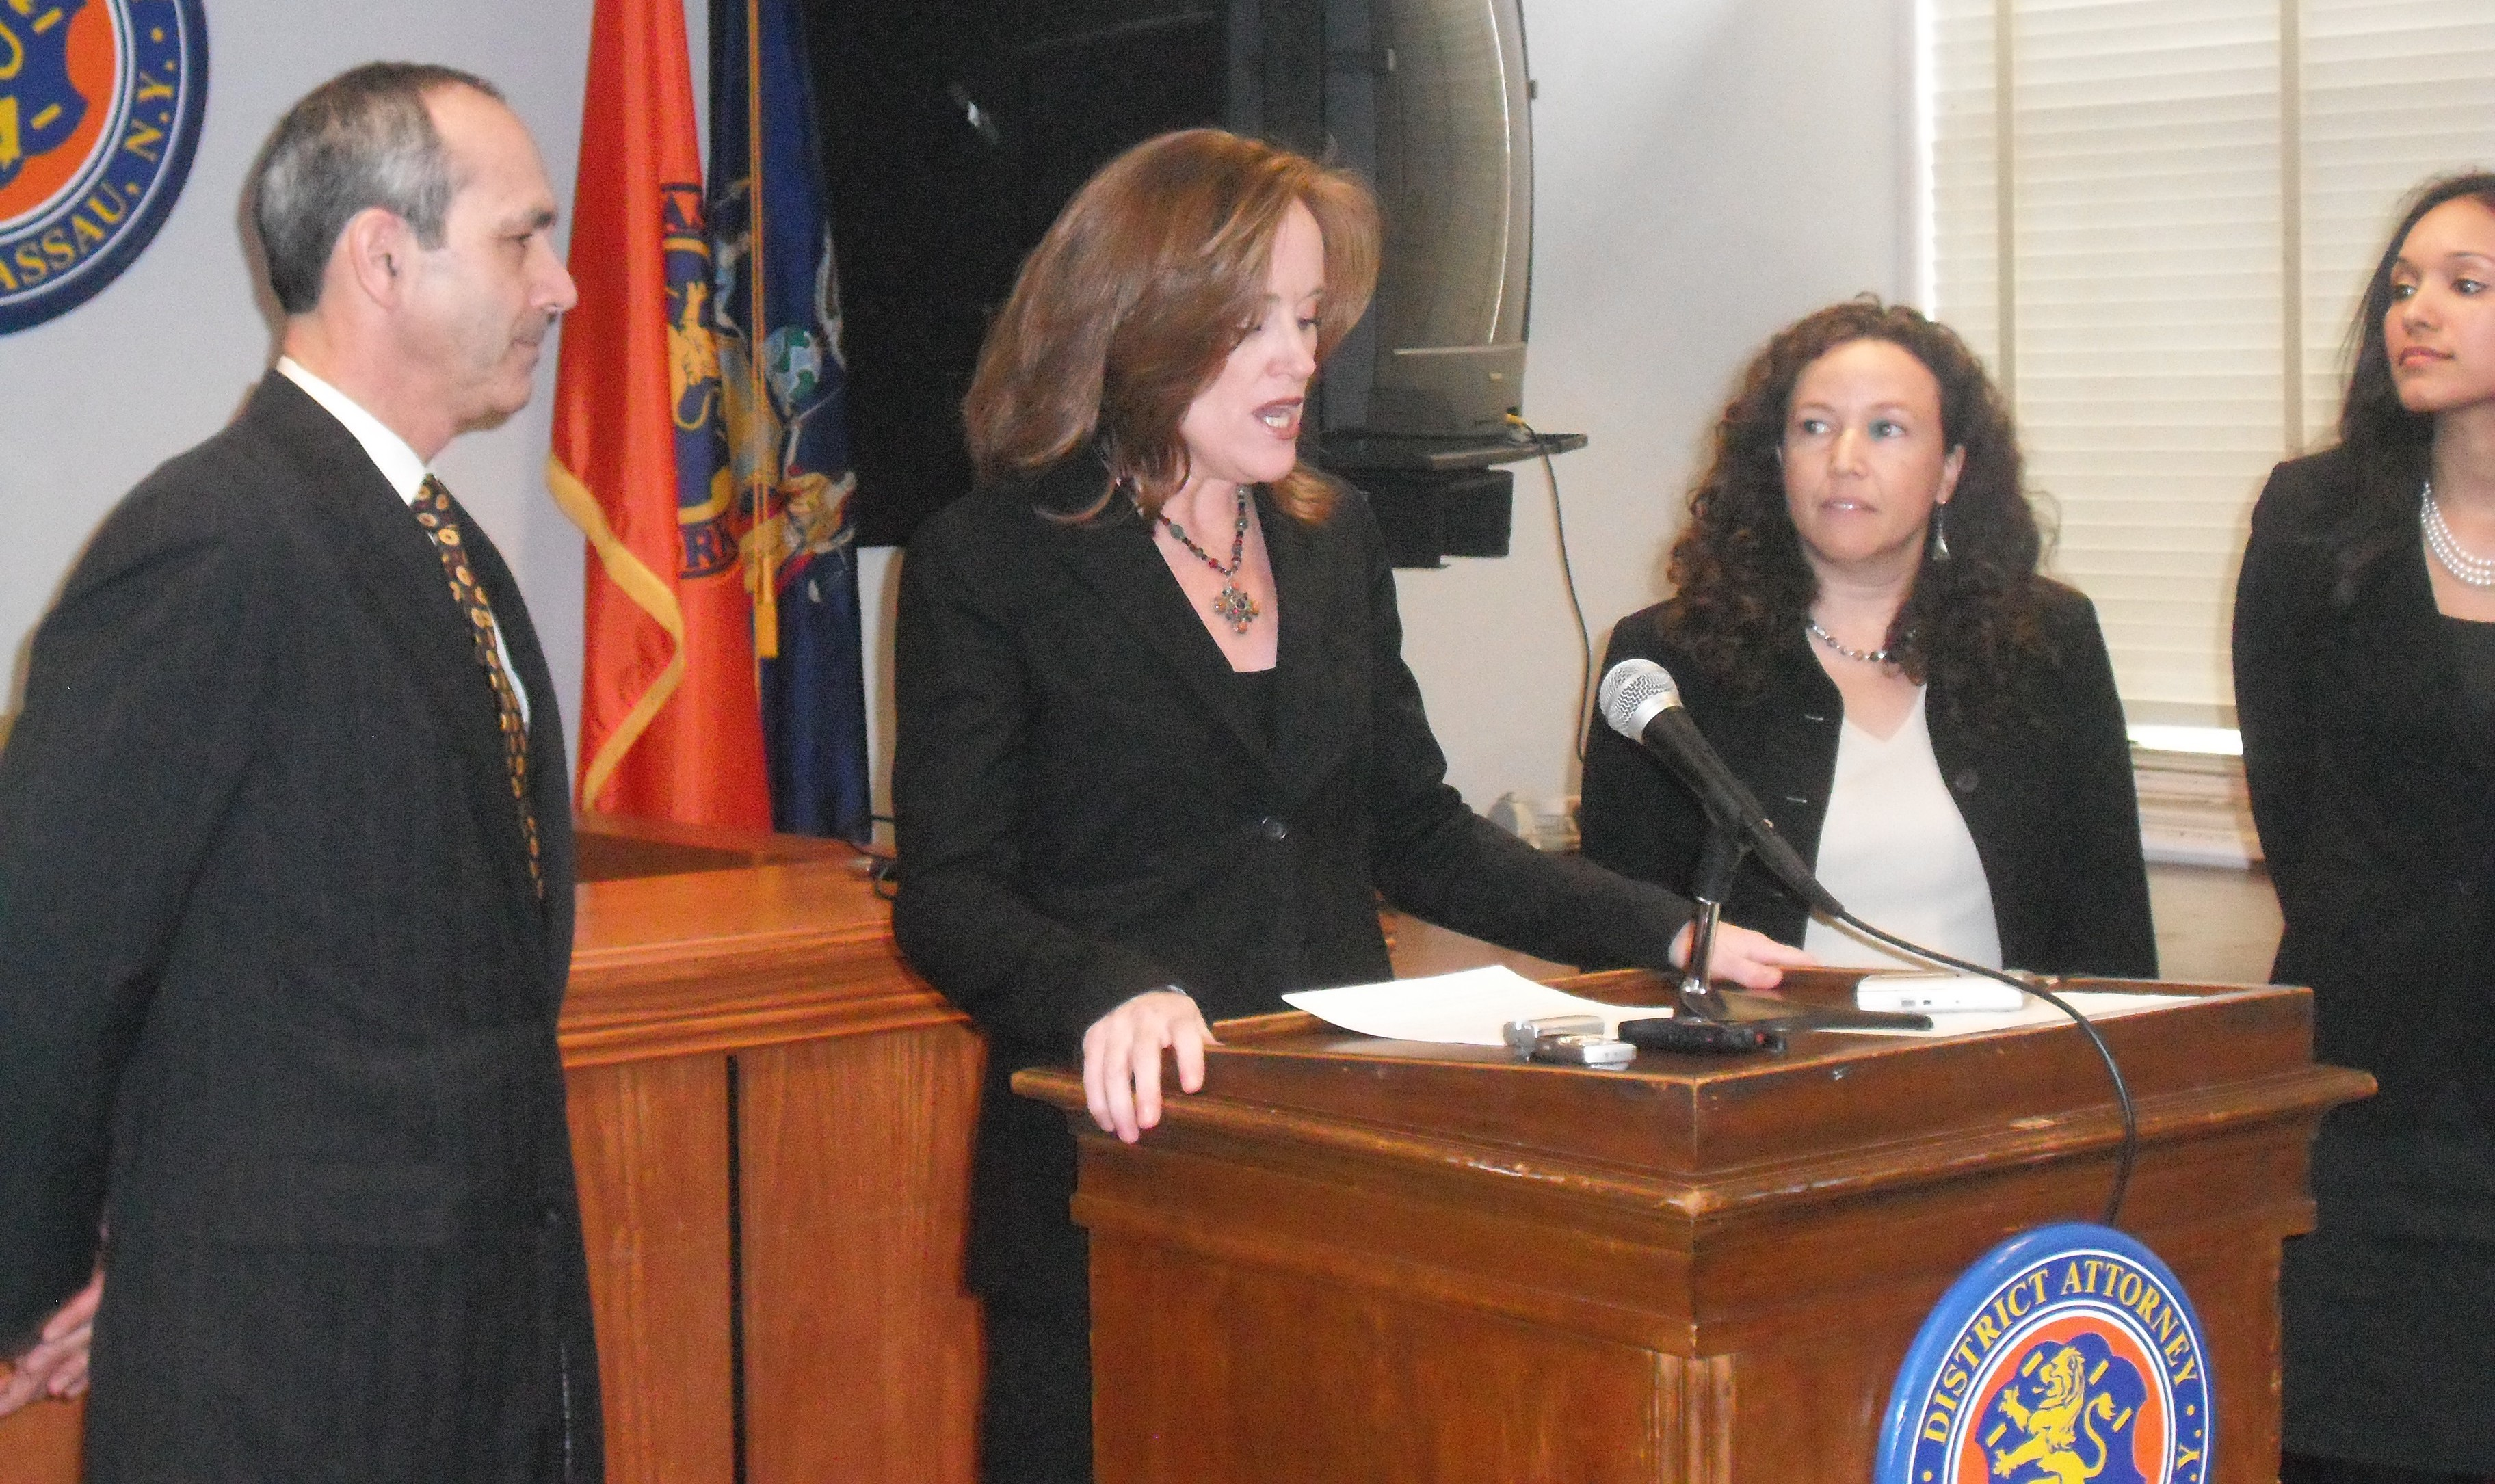 District Attorney Kathleen Rice